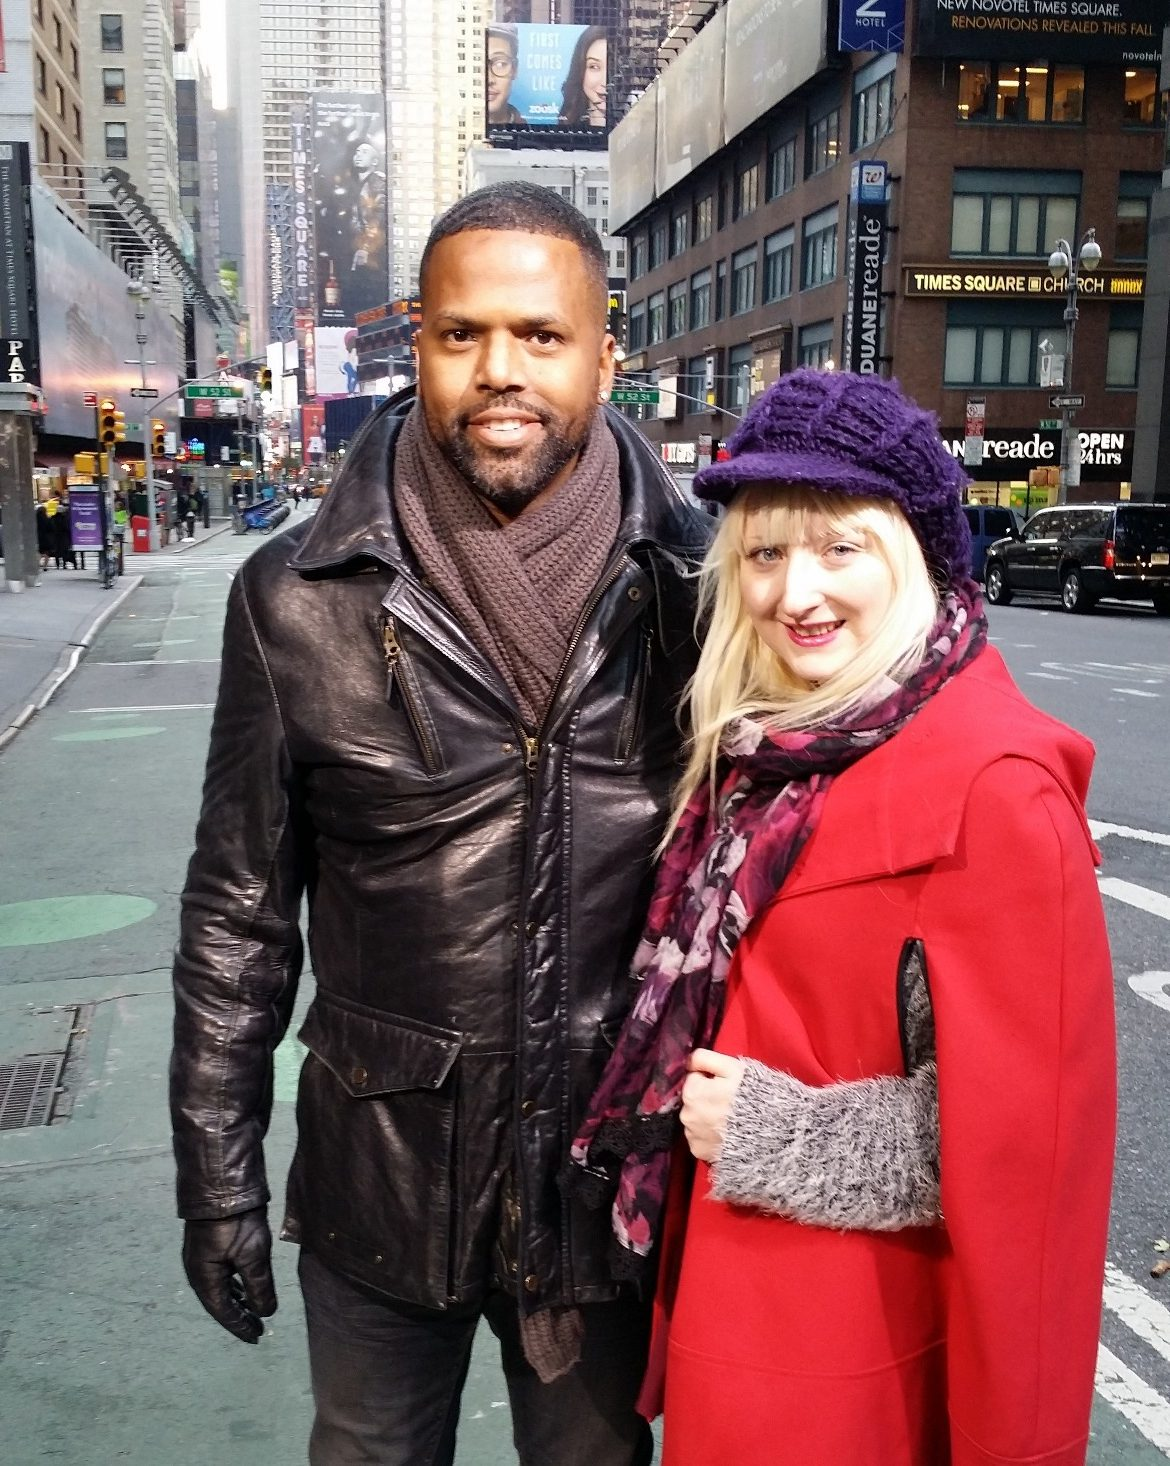 Me and AJ Calloway - New York New York, travel blog by BeckyBecky Blogs